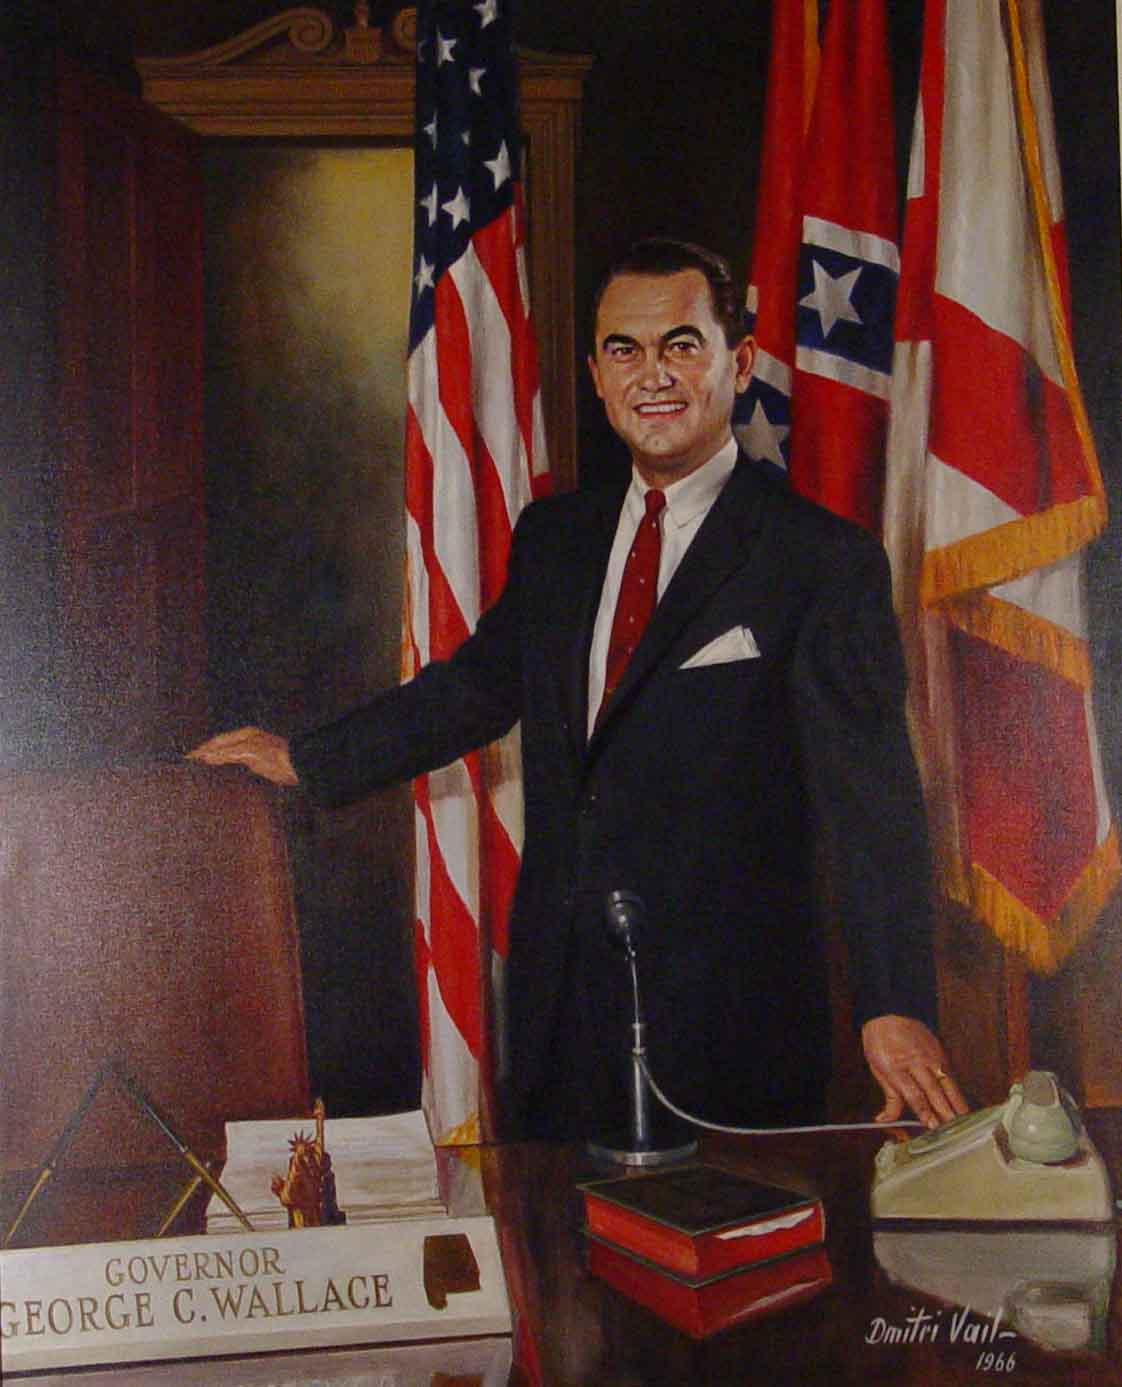 photo of portrait of Ala. Governor George C. Wallace